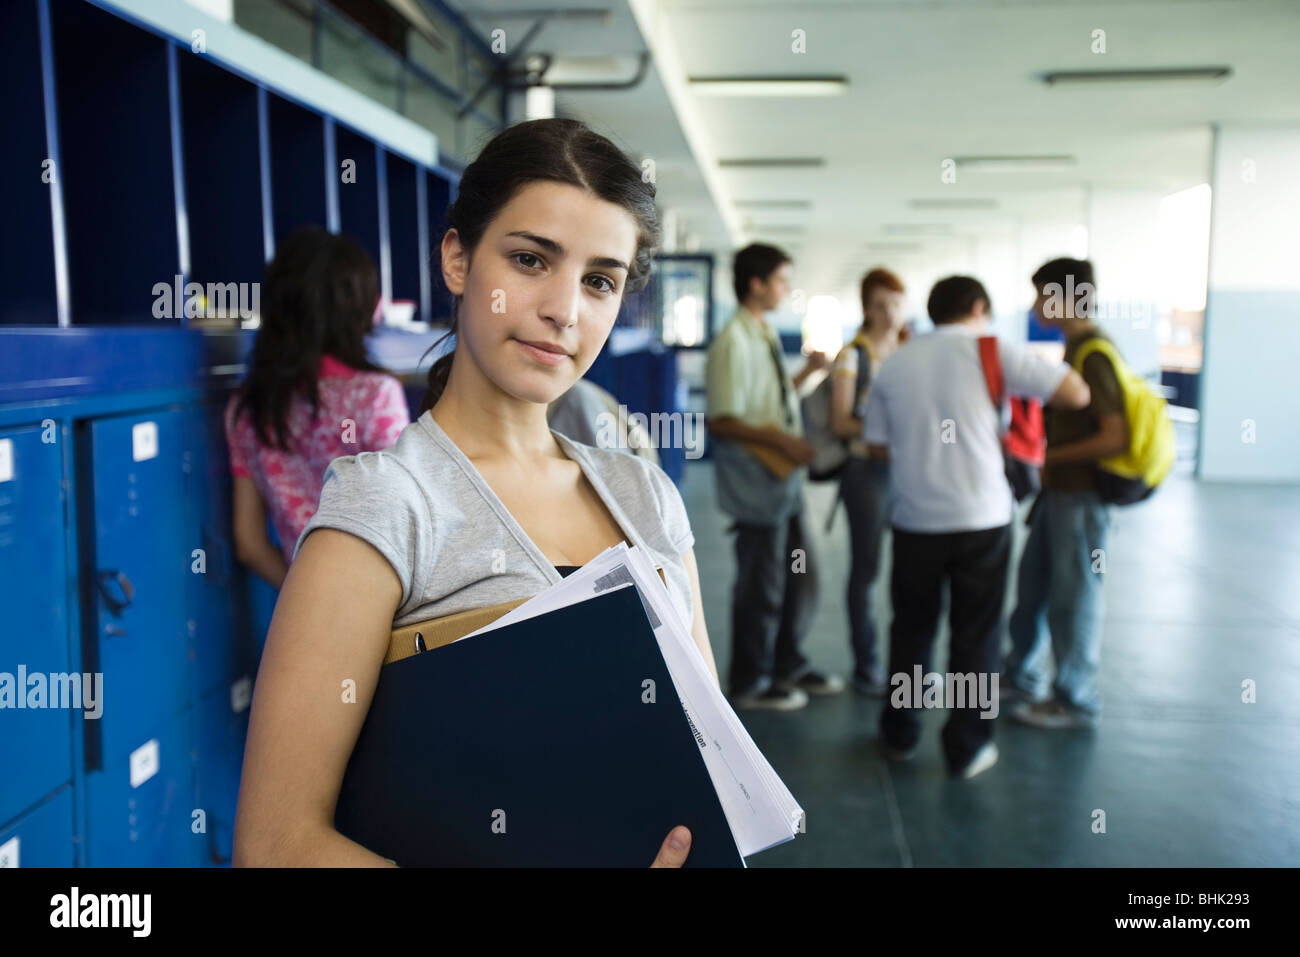 Female high school student standing in hall lined with lockers - Stock Image